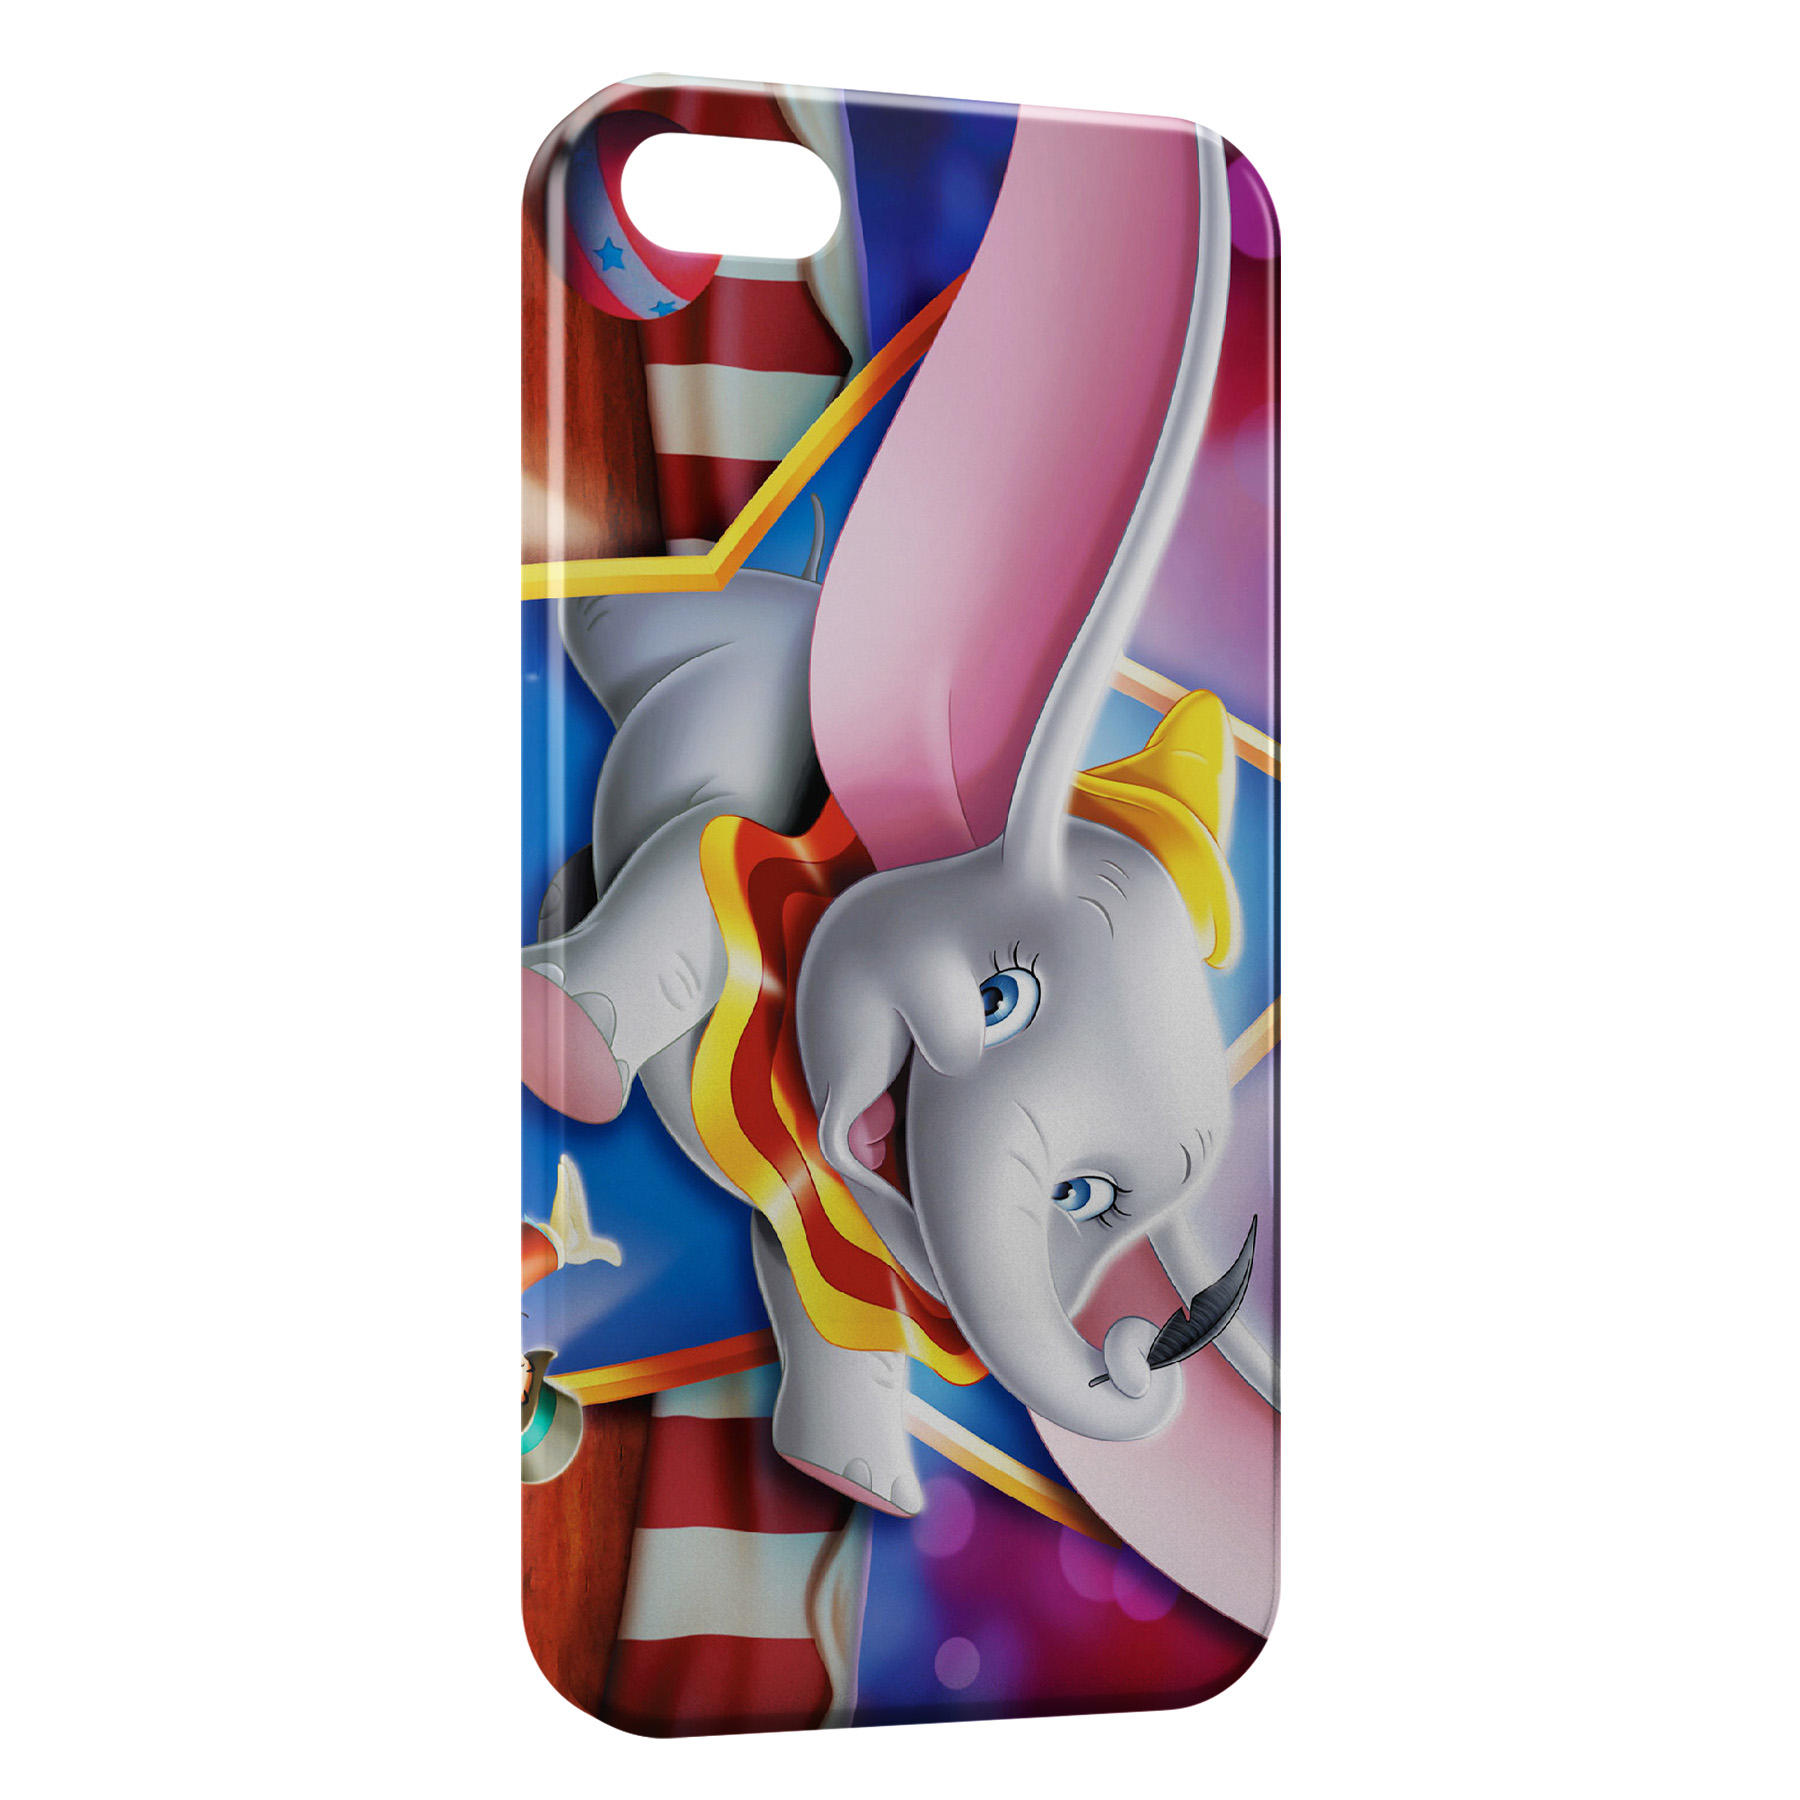 coque dumbo iphone 5